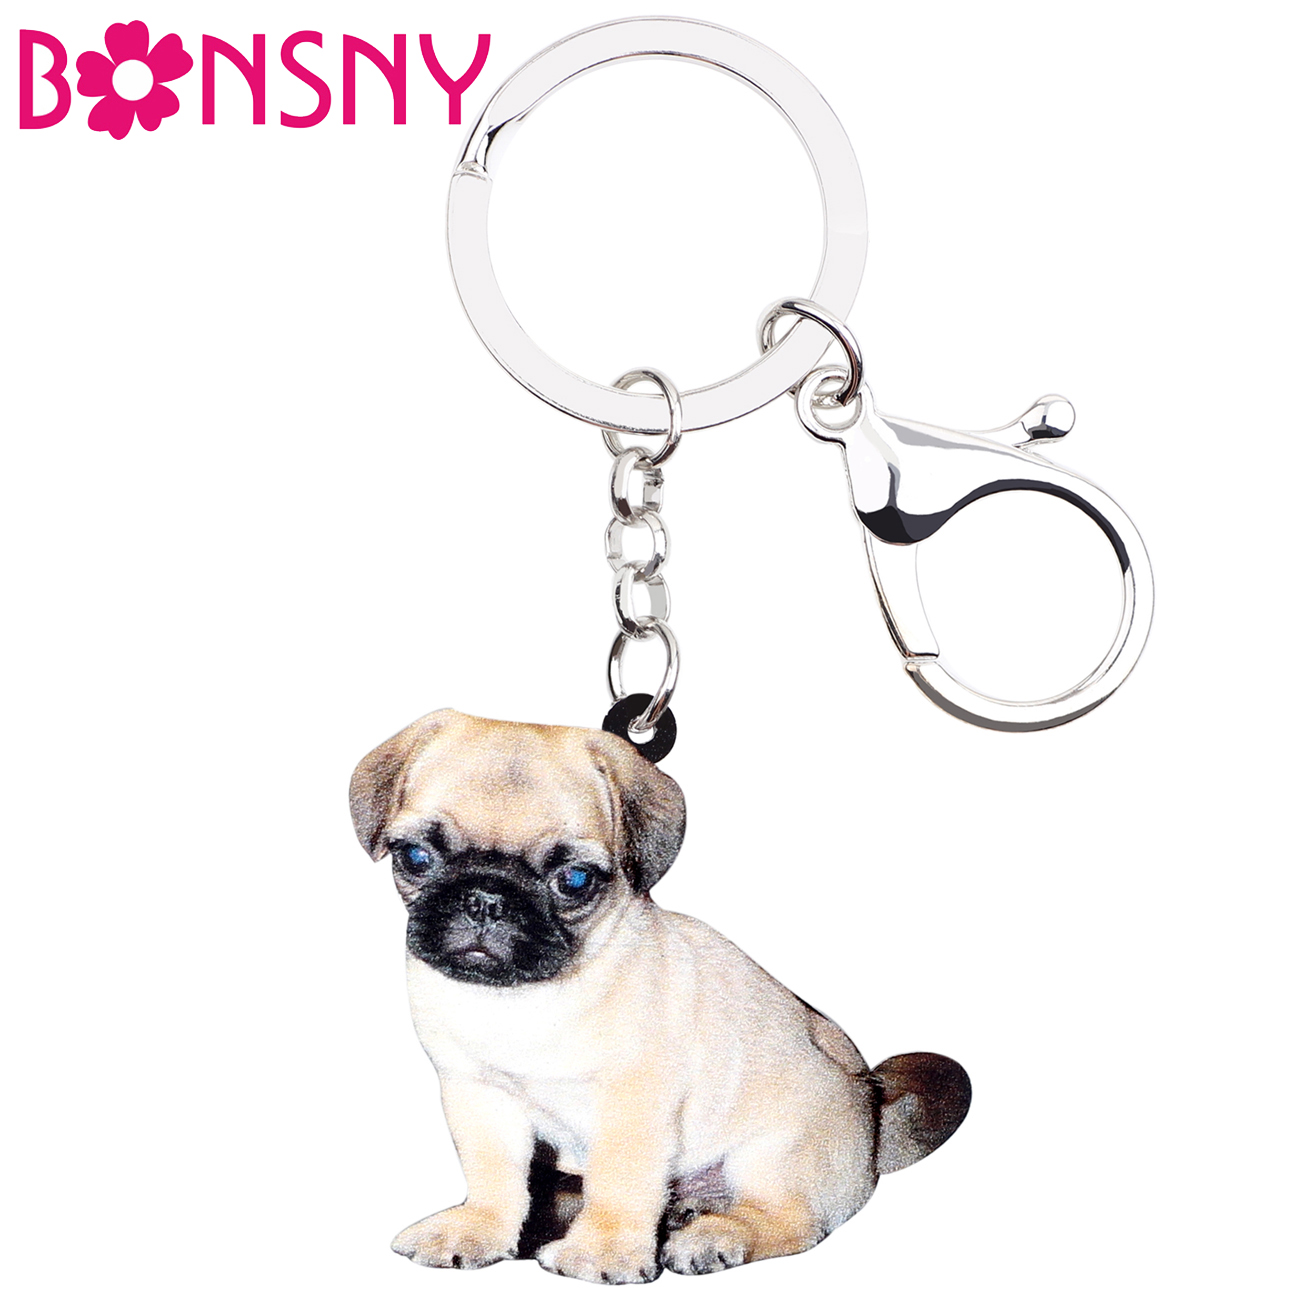 Bonsny Acrylic Pug Dog Key Chains Keychains Rings Cartoon Fashion Animal Jewelry For Women Girls Gift Bag Car Charms Pendant Hot